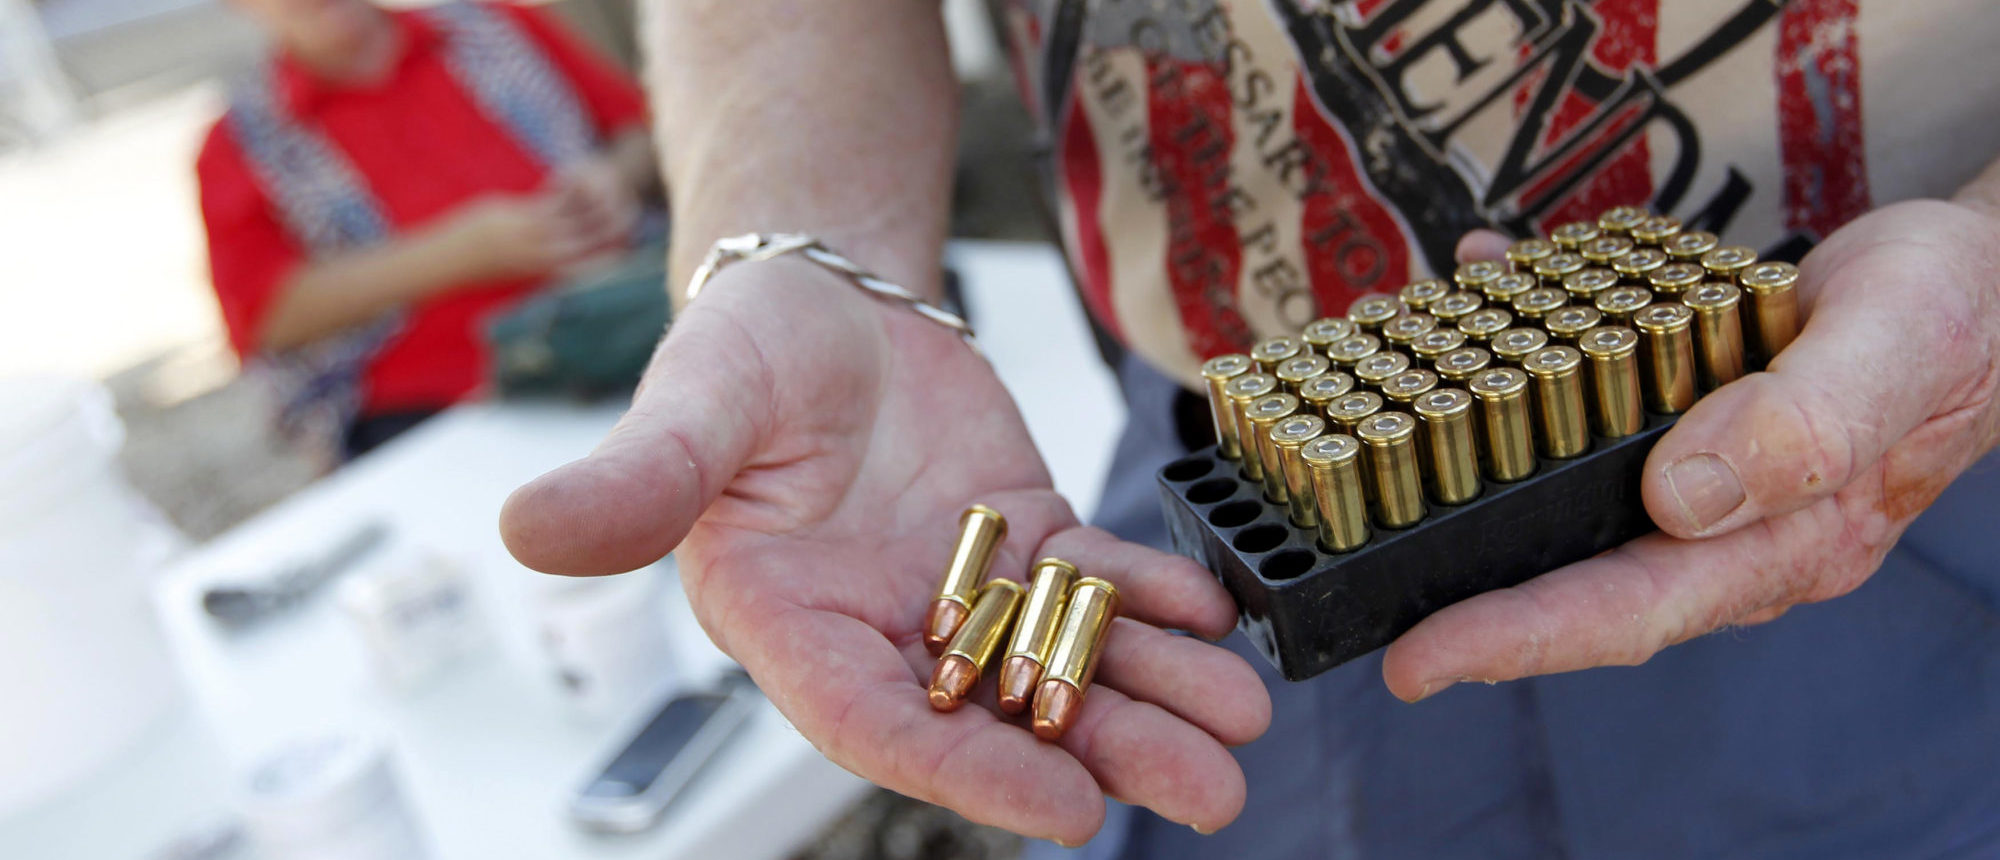 Doug Varrieur displays some .38 caliber ammunition on the firing range he set up in the yard of his home in Big Pine Key in the Florida Keys March 5, 2014. REUTERS/Andrew Innerarity